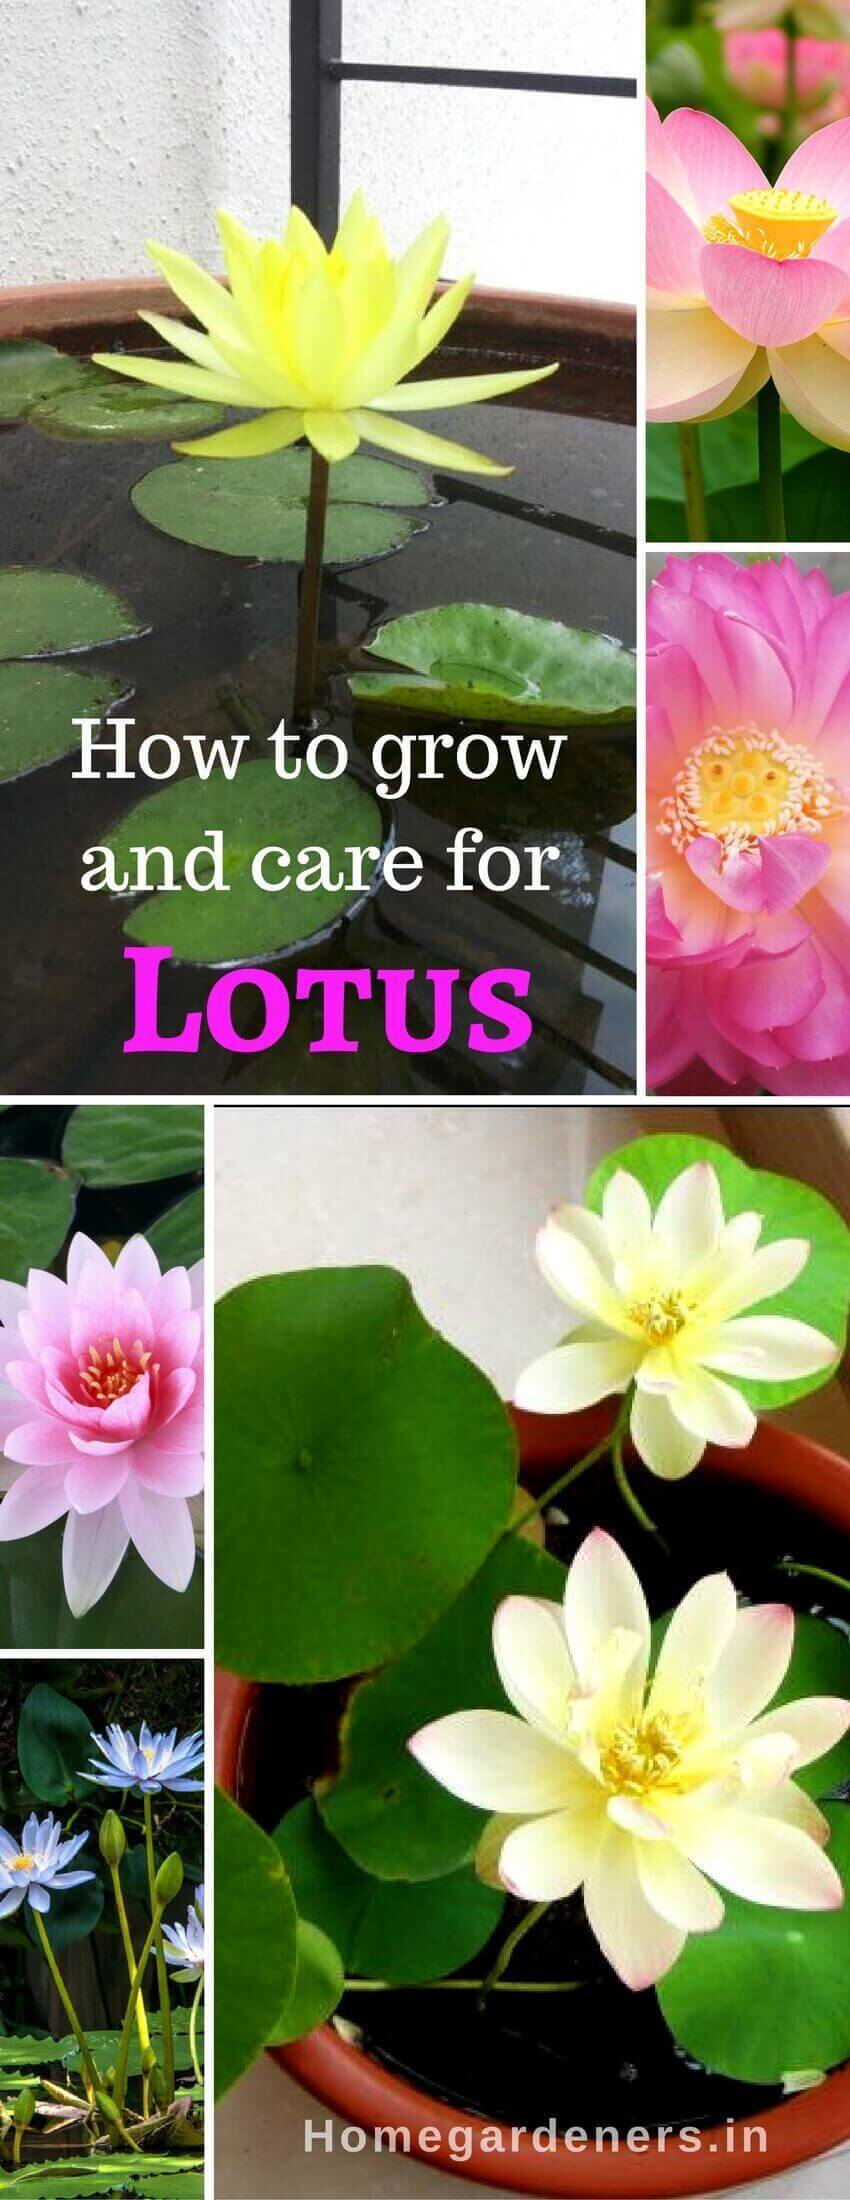 Sacred lotus how to grow and care for lotus plants home gardeners sacred lotus how to grow and care for lotus plants izmirmasajfo